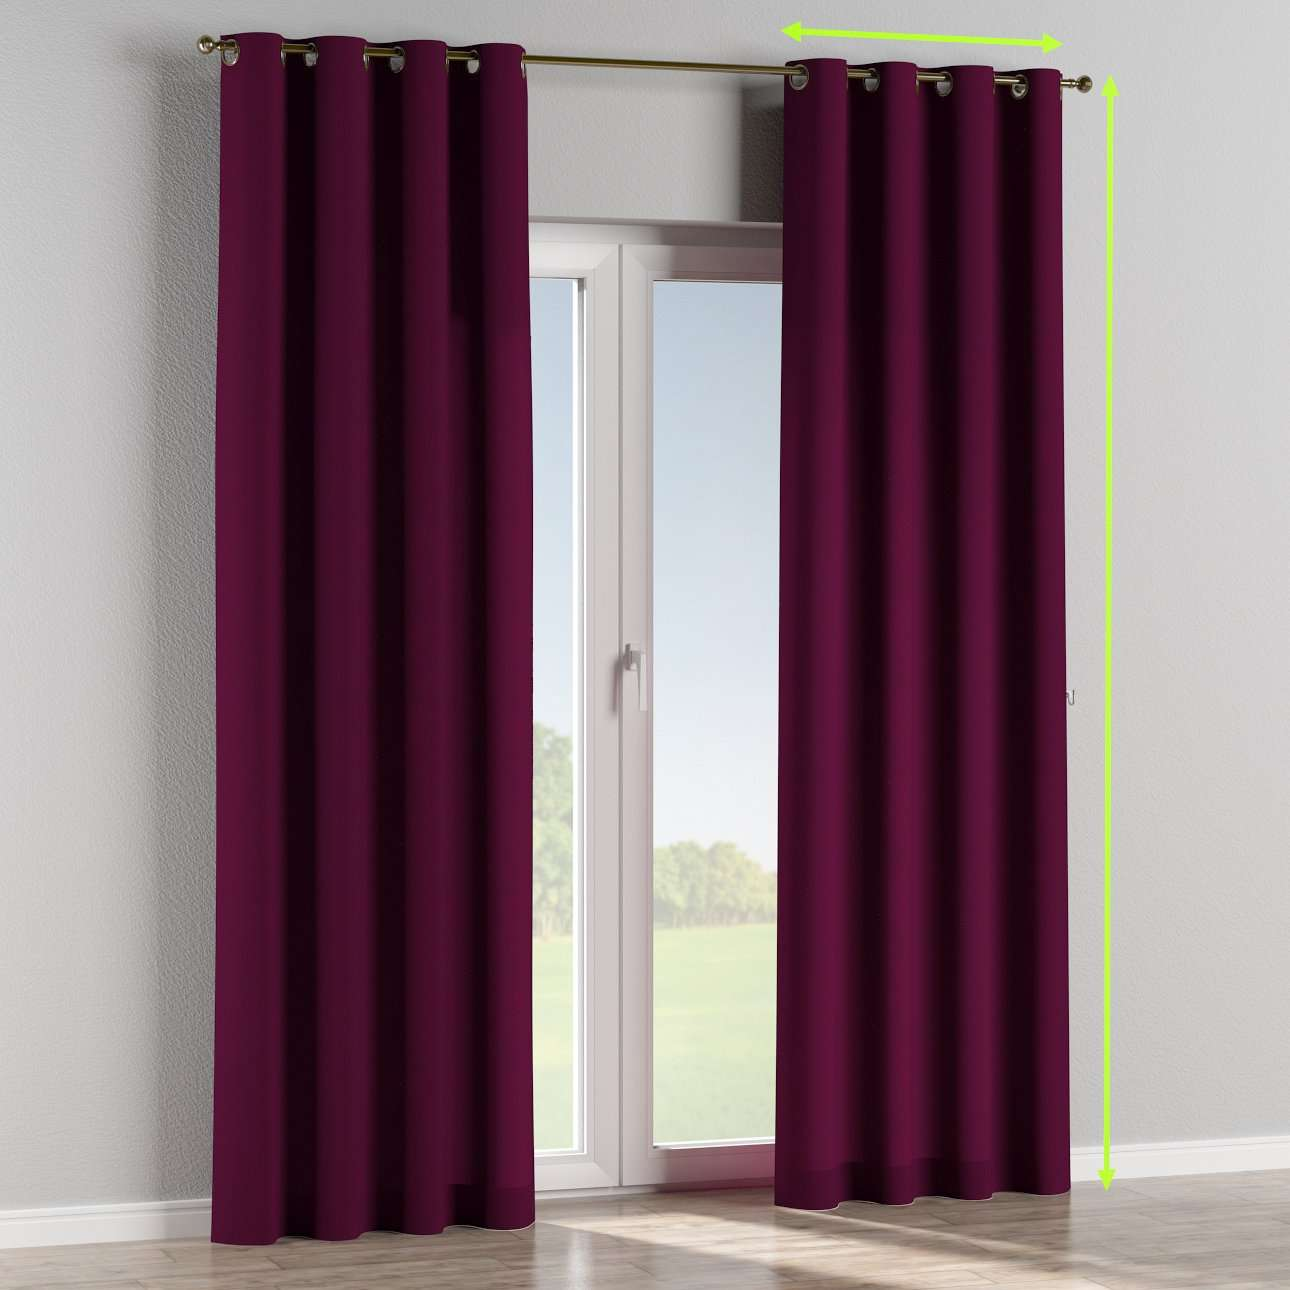 Eyelet lined curtains in collection Chenille, fabric: 702-12